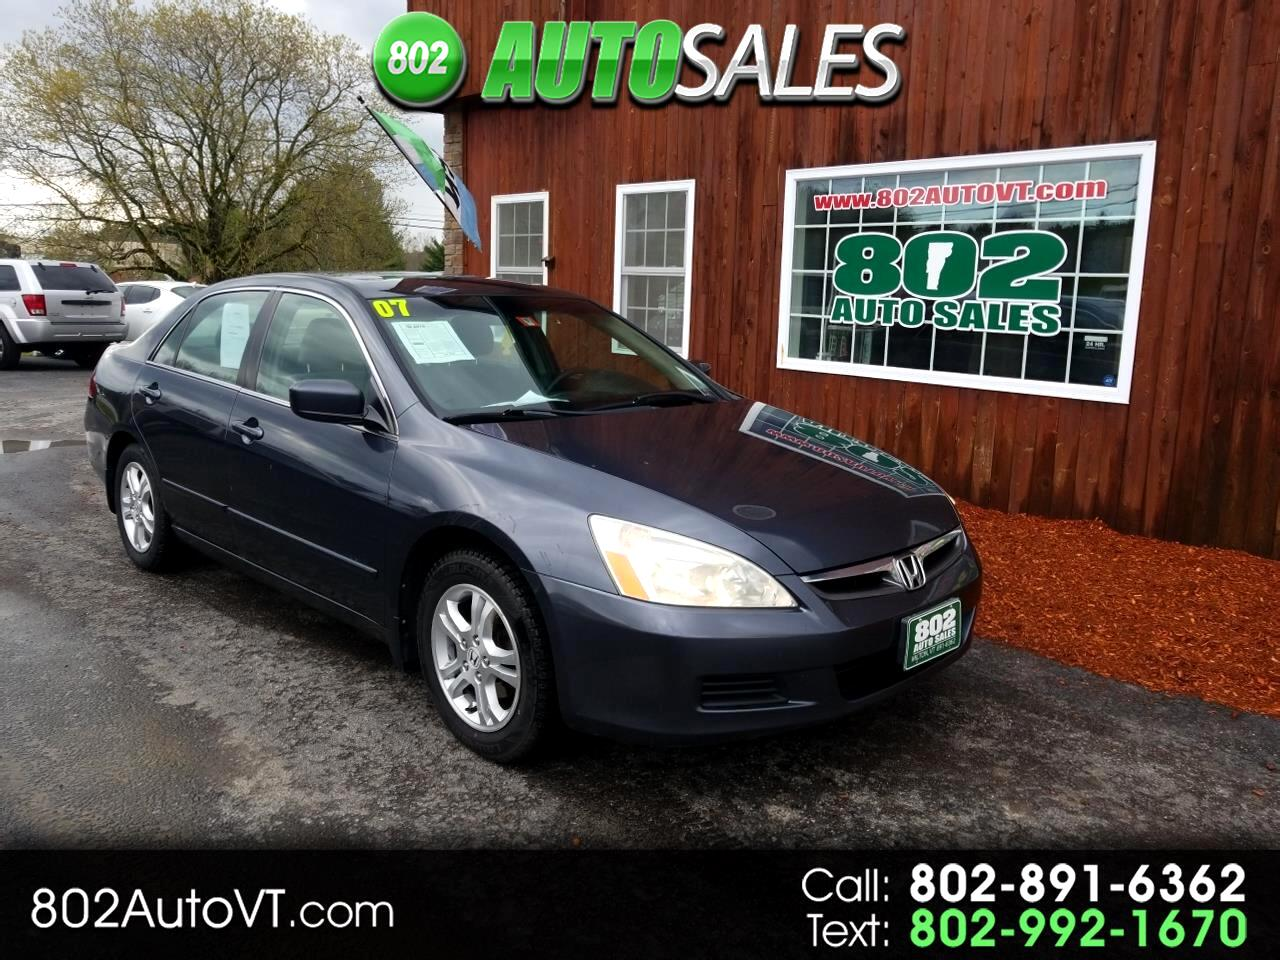 2007 Honda Accord Sdn 4dr I4 AT LX SE